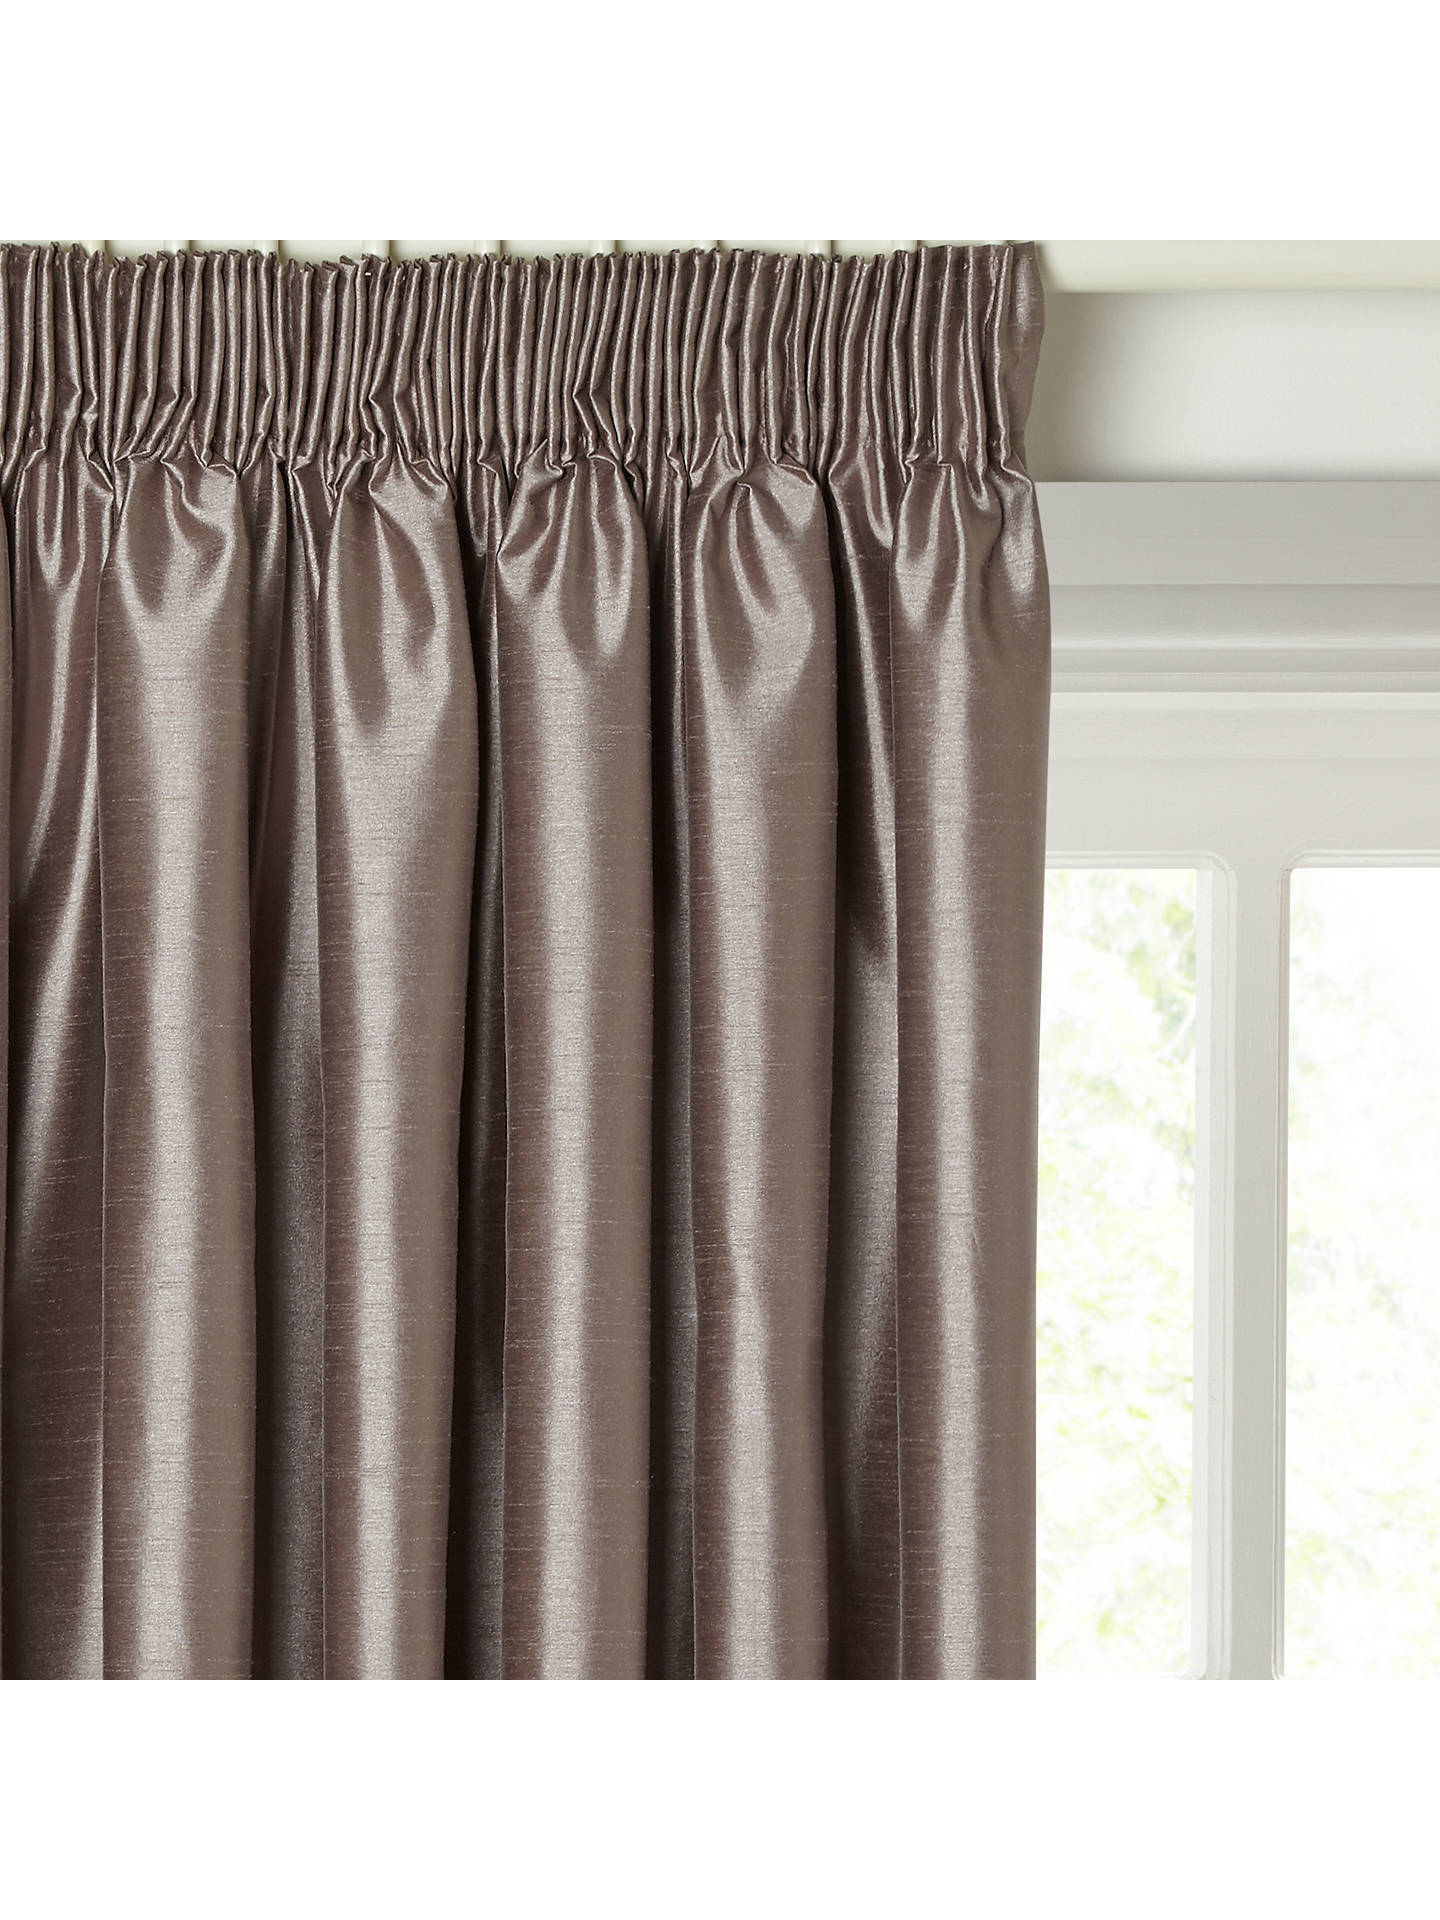 Buy John Lewis & Partners Faux Silk Pair Blackout Lined Pencil Pleat Curtains, Mocha, W167 x Drop 228cm Online at johnlewis.com